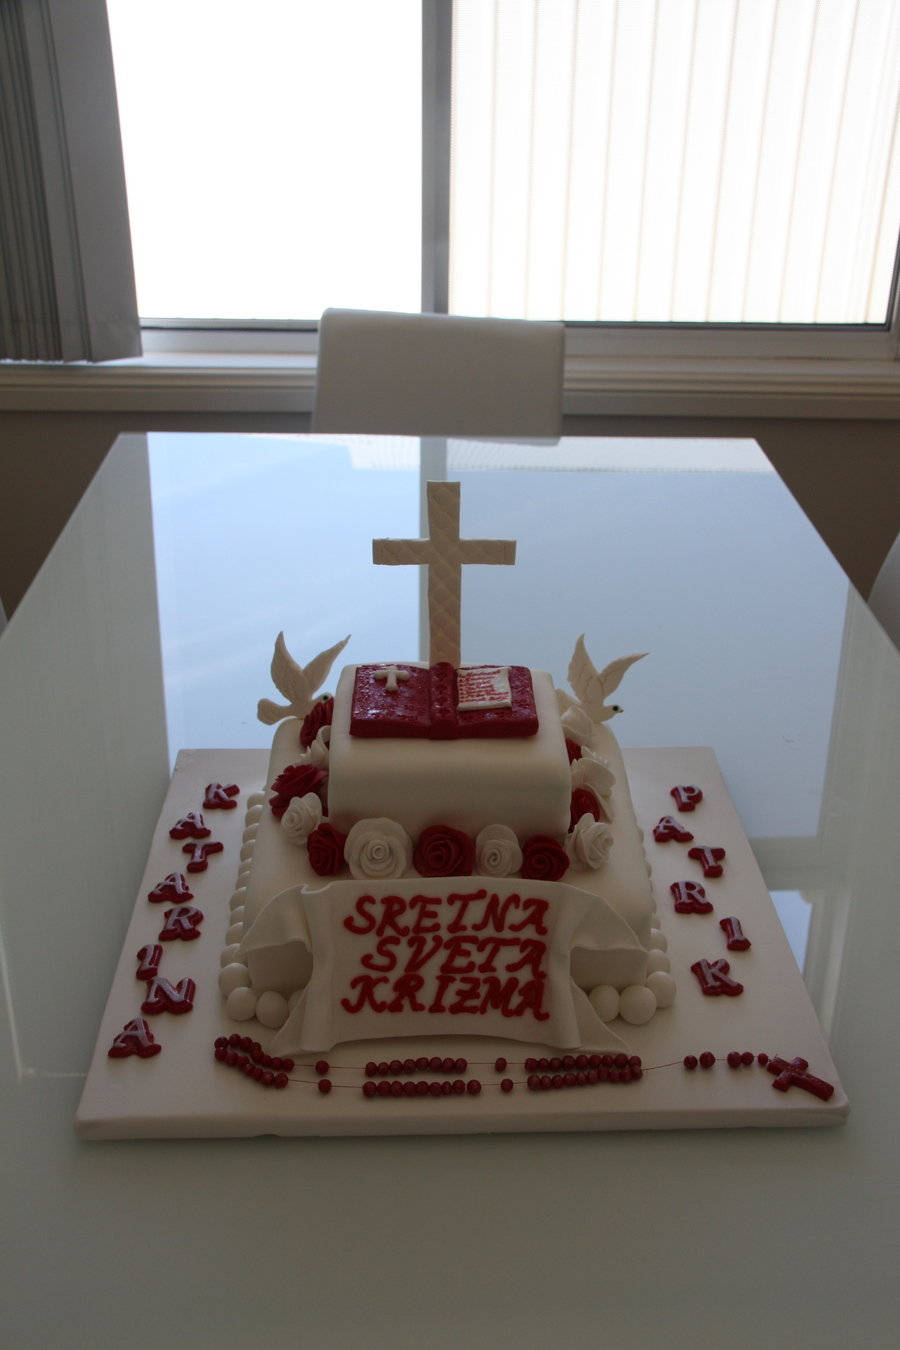 Cake Decoration Rosary Beads : Confirmation Cake W/ Rosary Beads And Doves - CakeCentral.com